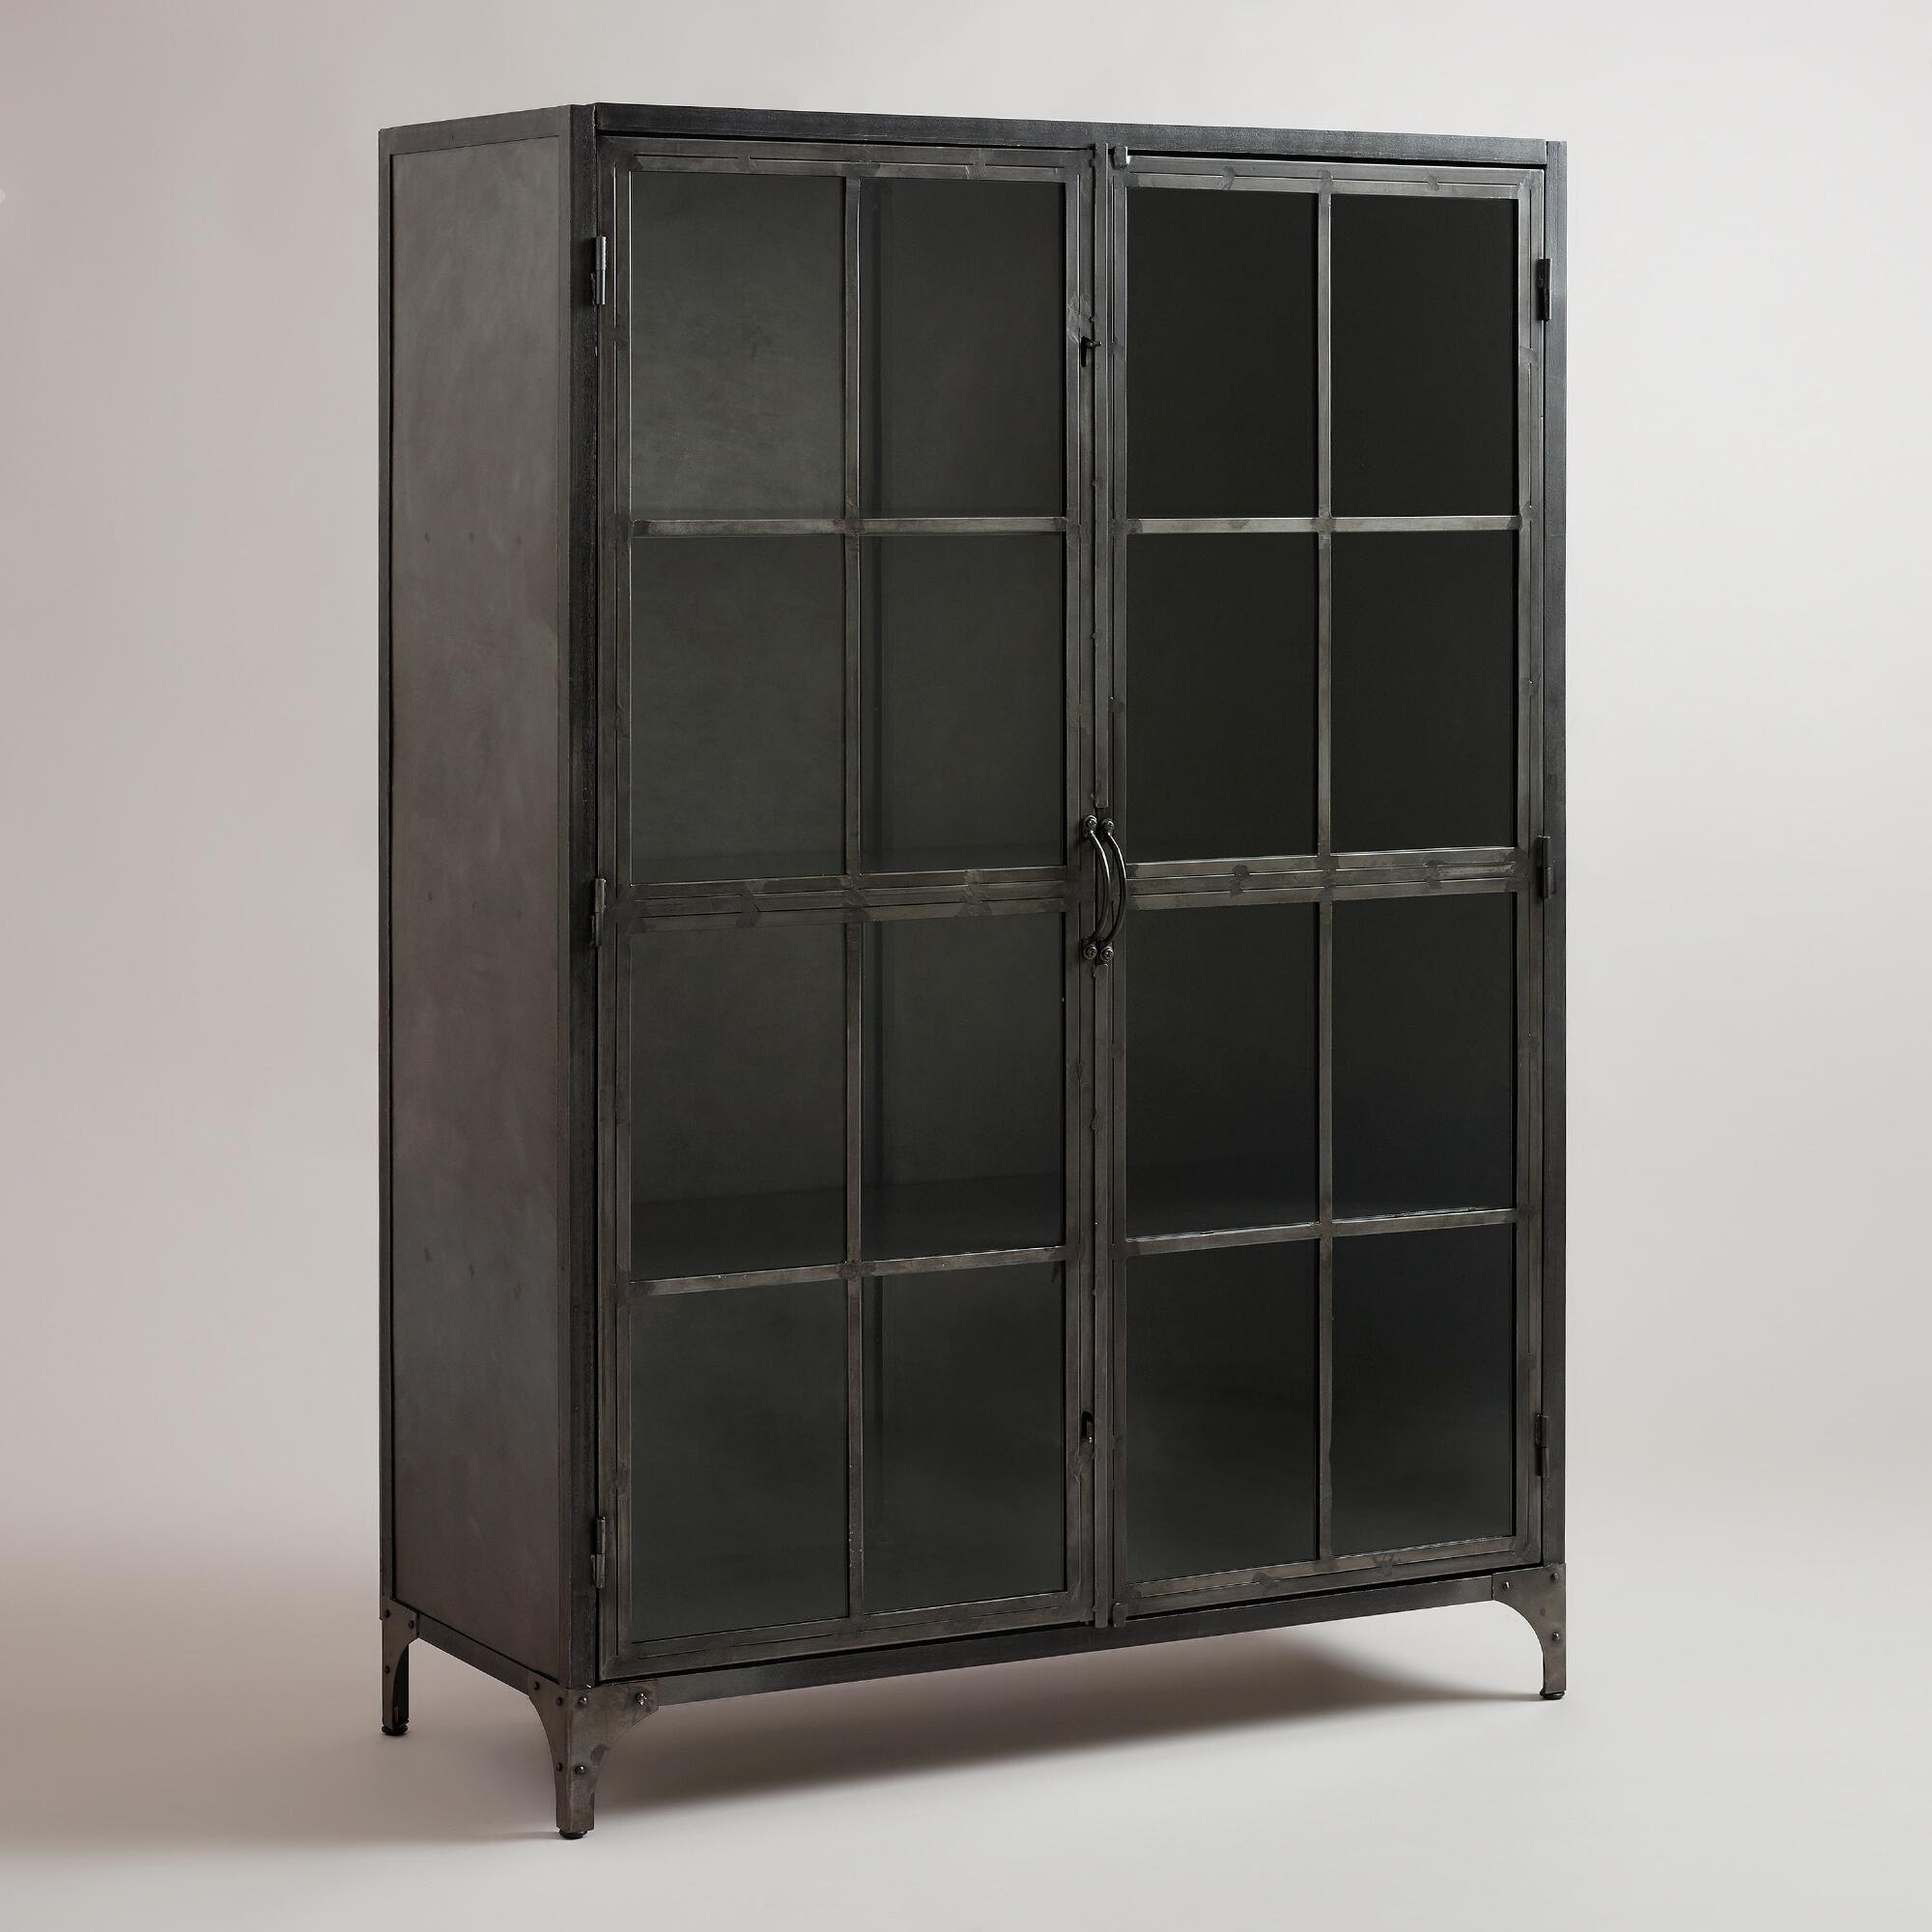 cabinet furniture small with grande glass ikea espresso mount tv prepac doors and bookcase console shelf locking storage shaker media black drawers wall dvd australia